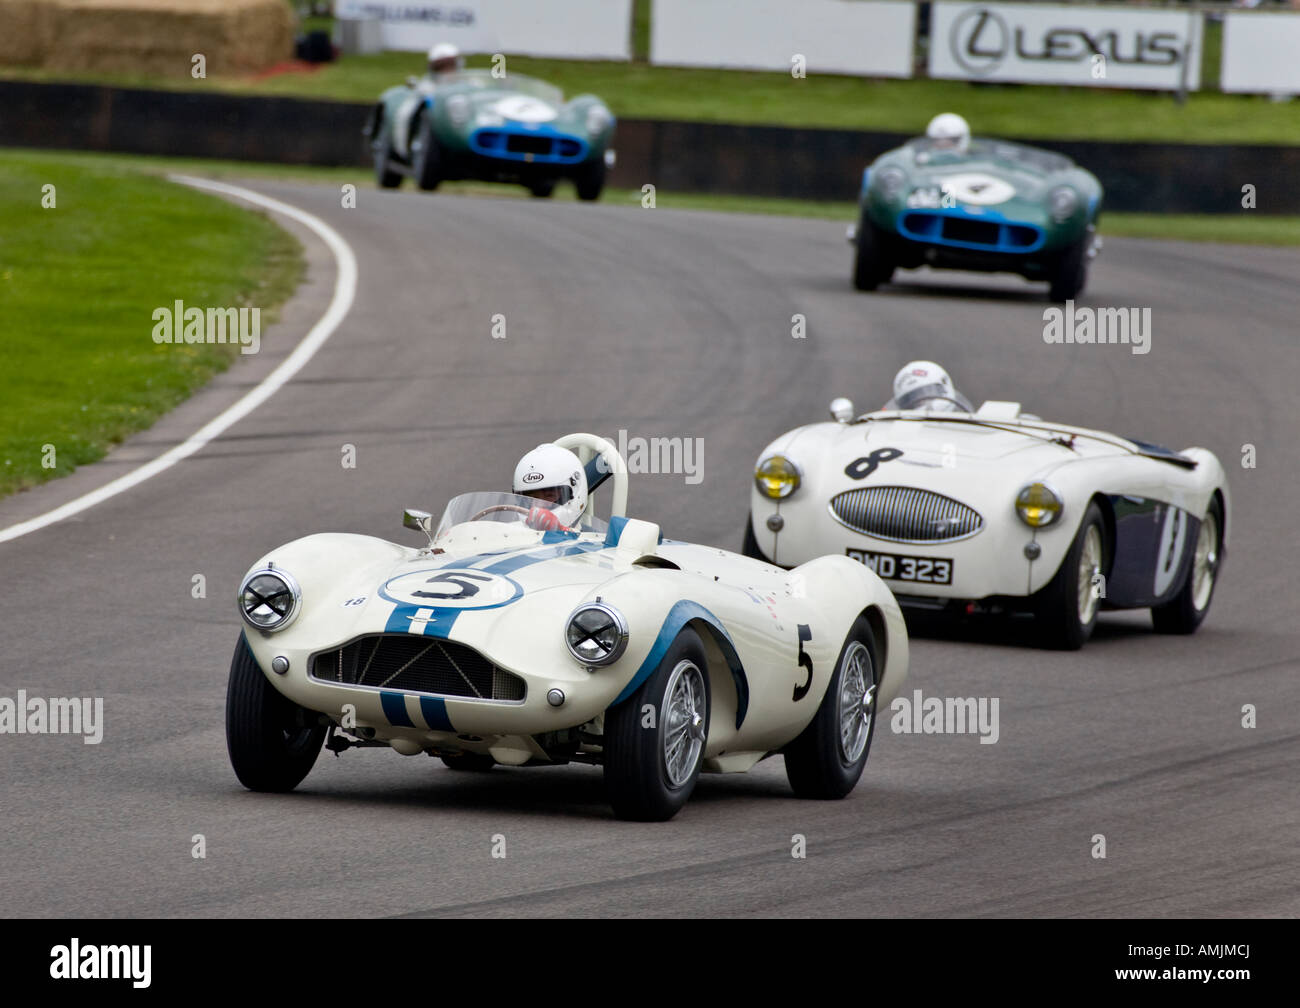 1955 Aston Martin DB3S driven by Uri Muller leads the Austin-Healey 100S of Stuart Graham through Madgwick at Goodwood Stock Photo